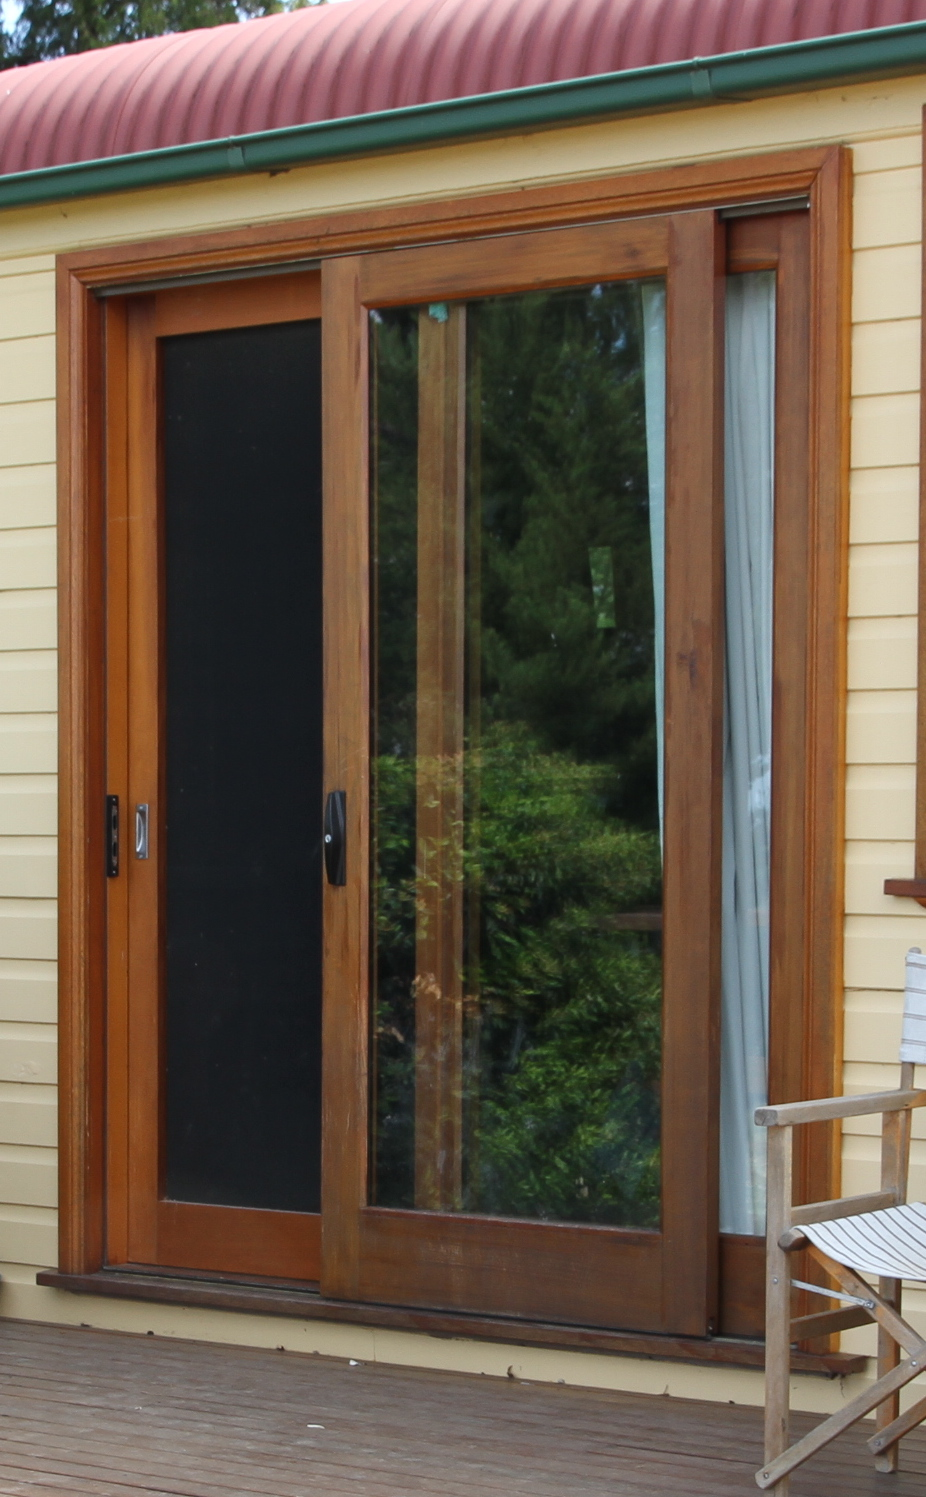 Flywire doors s le of our tailor made fly screen doors for External sliding doors